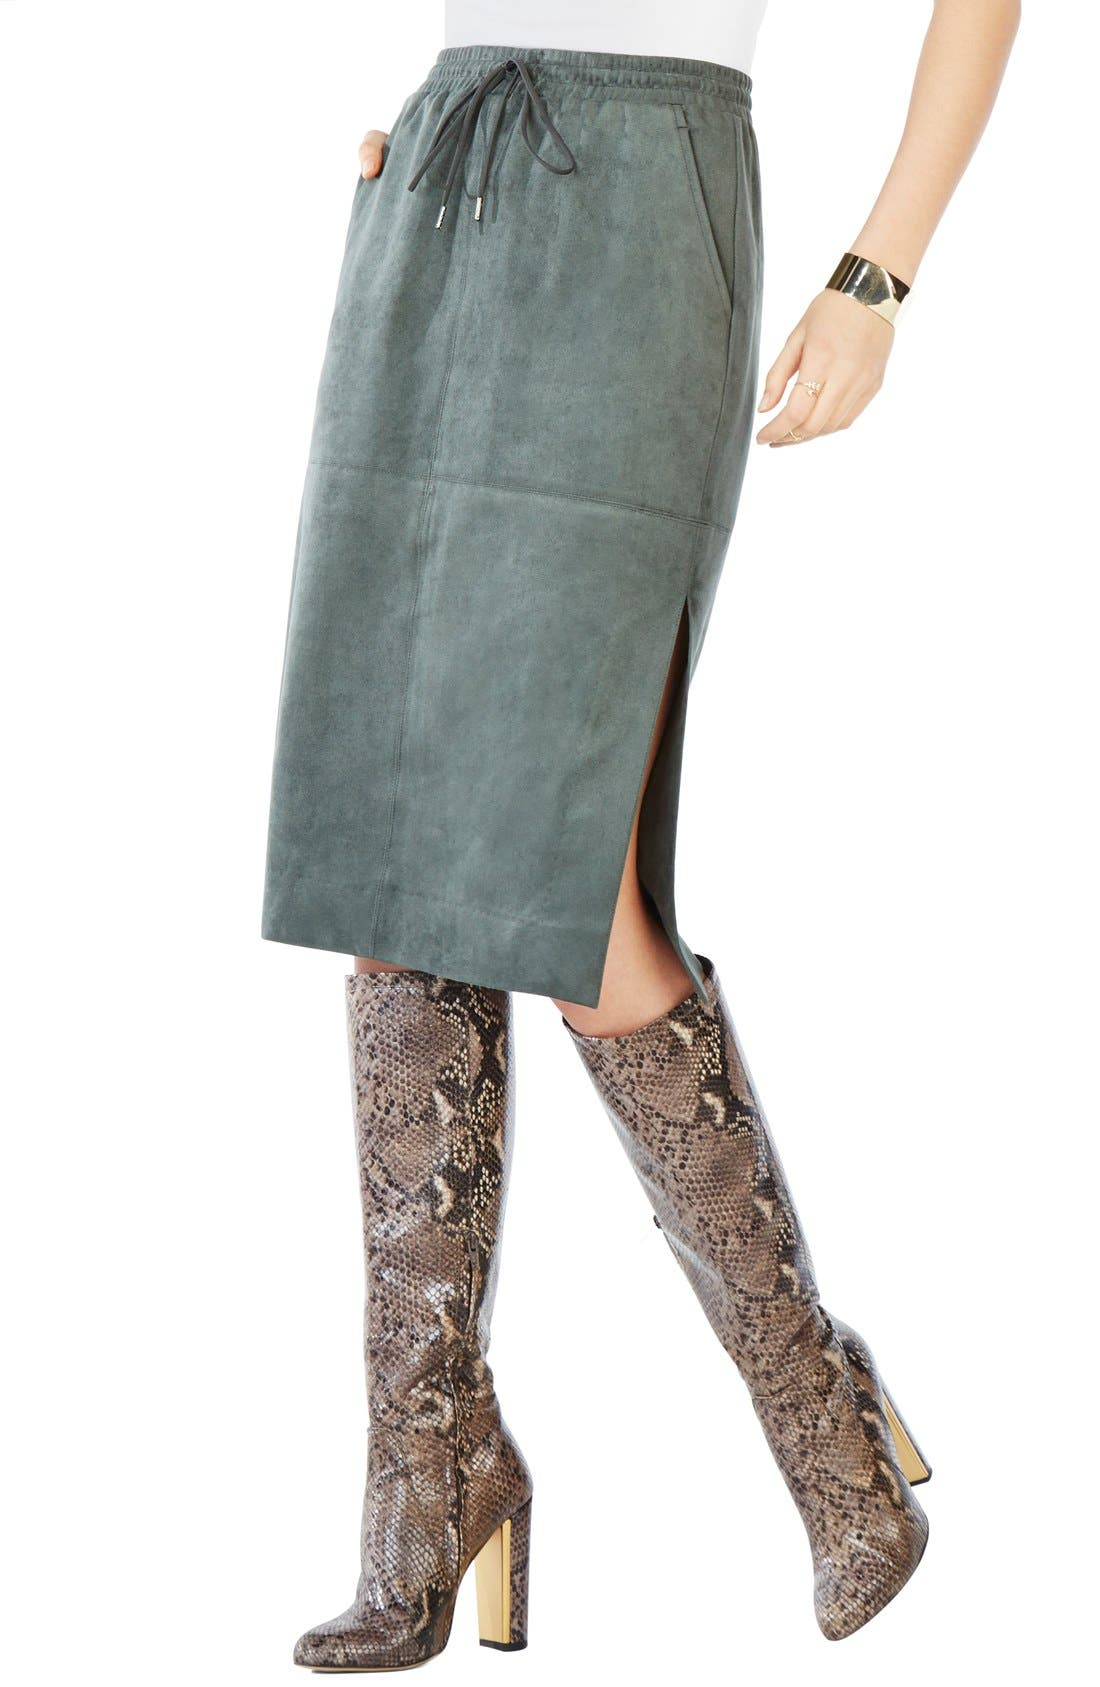 Main Image - BCBGMAXAZRIA 'Zandra' Faux Suede Pencil Skirt